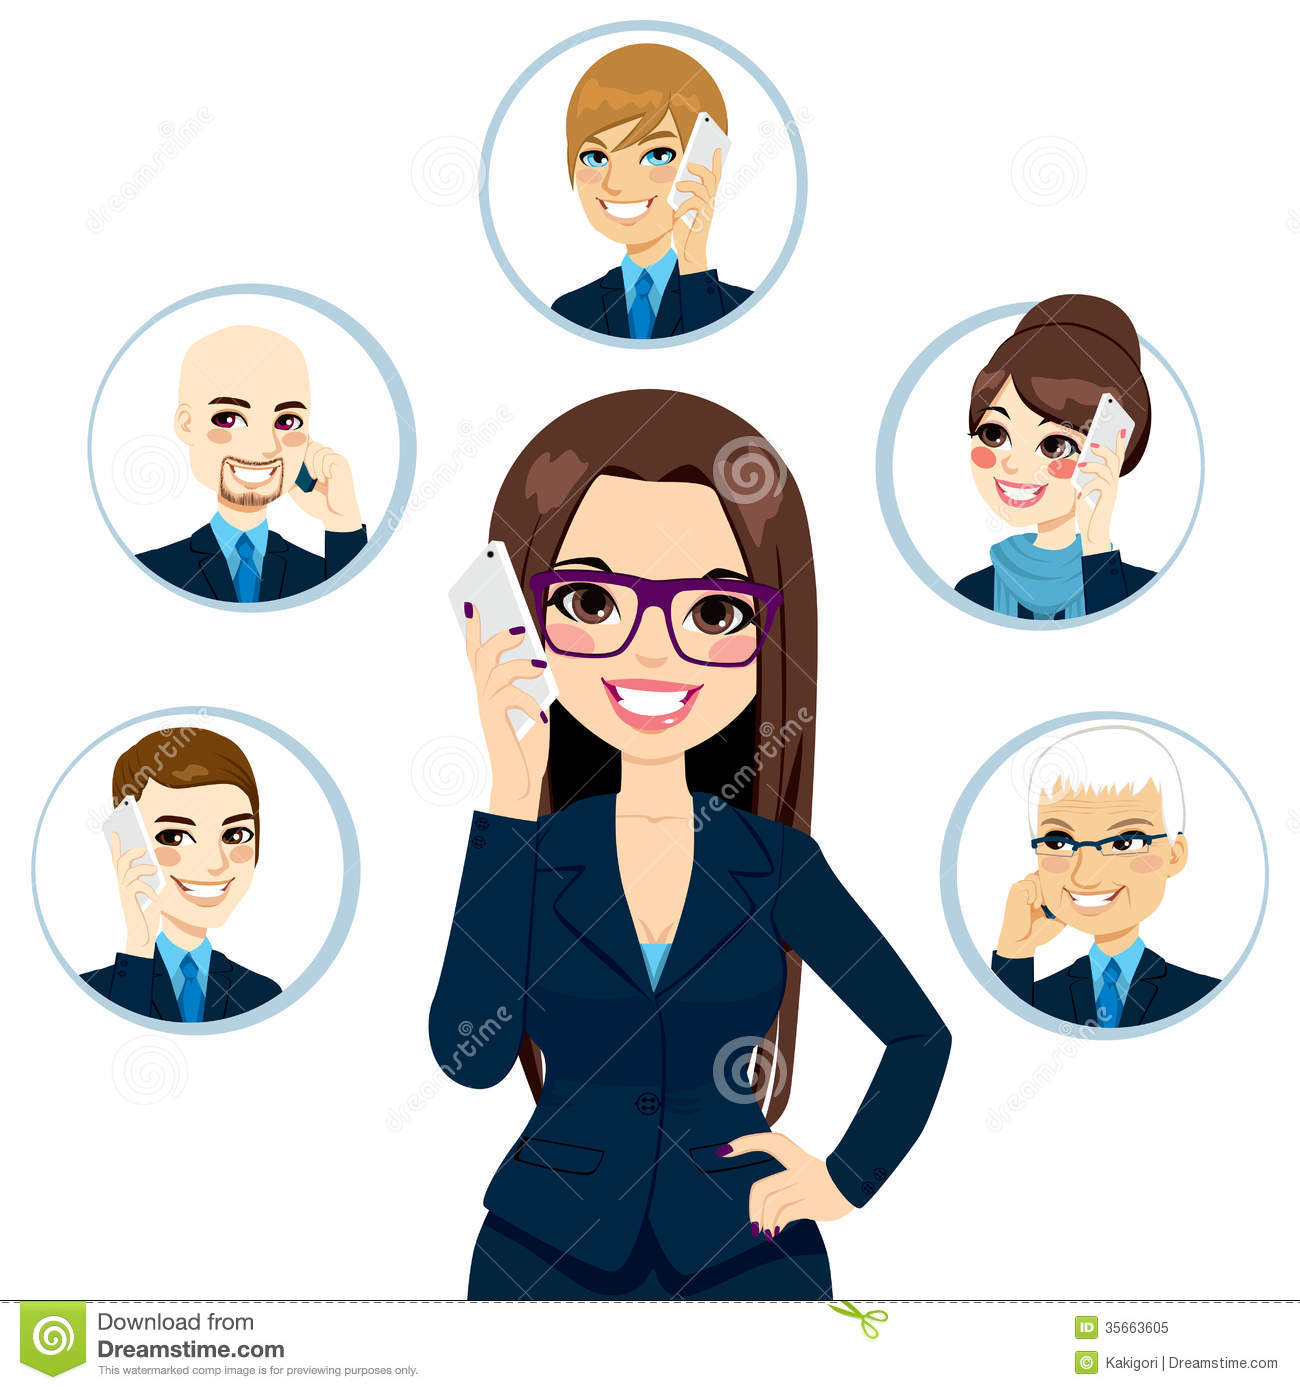 Business Contact: Business Contacts Concept Royalty Free Stock Photo